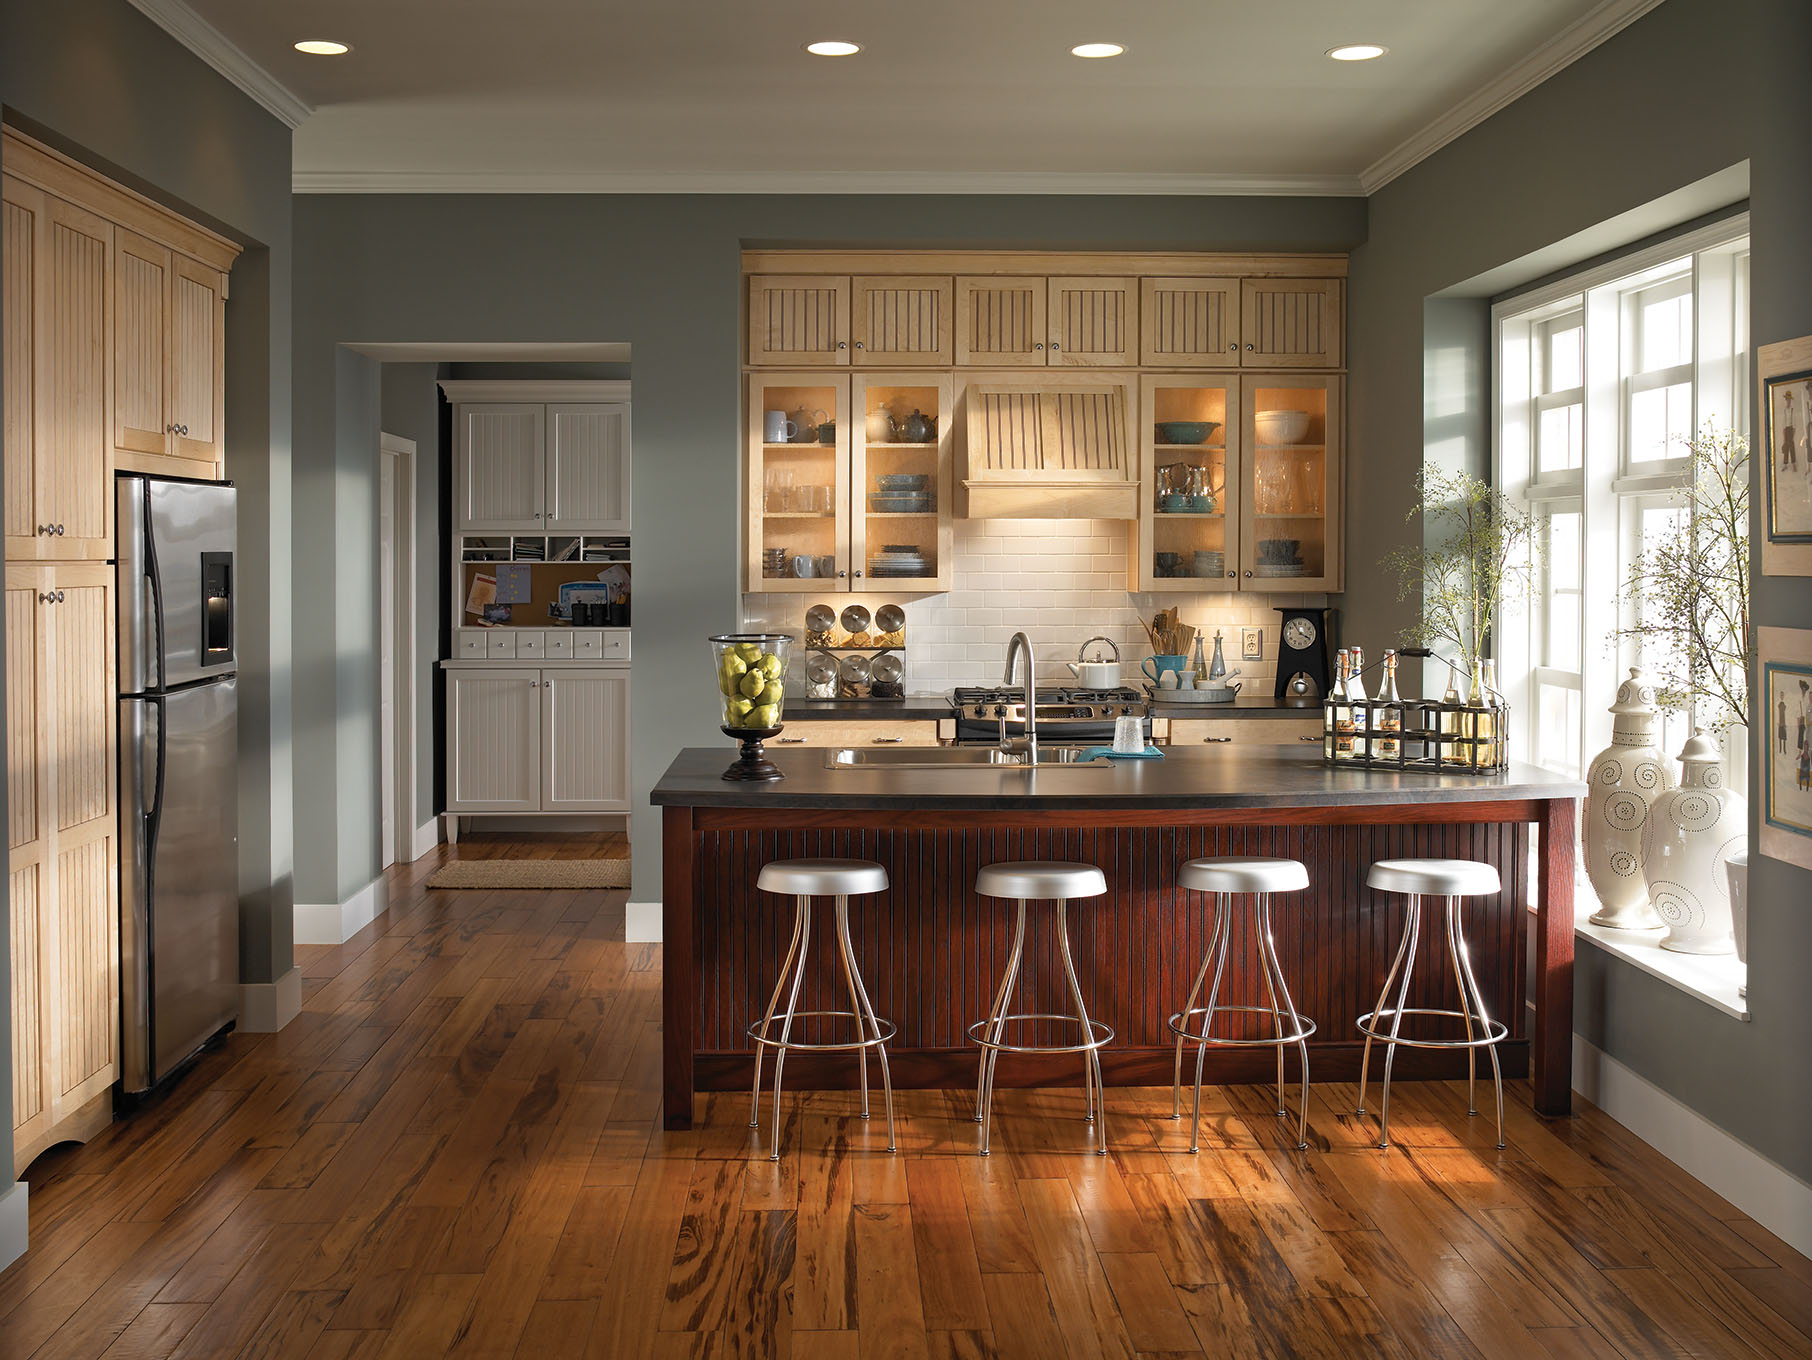 classic cabinetry in reedsburg wi offers the latest